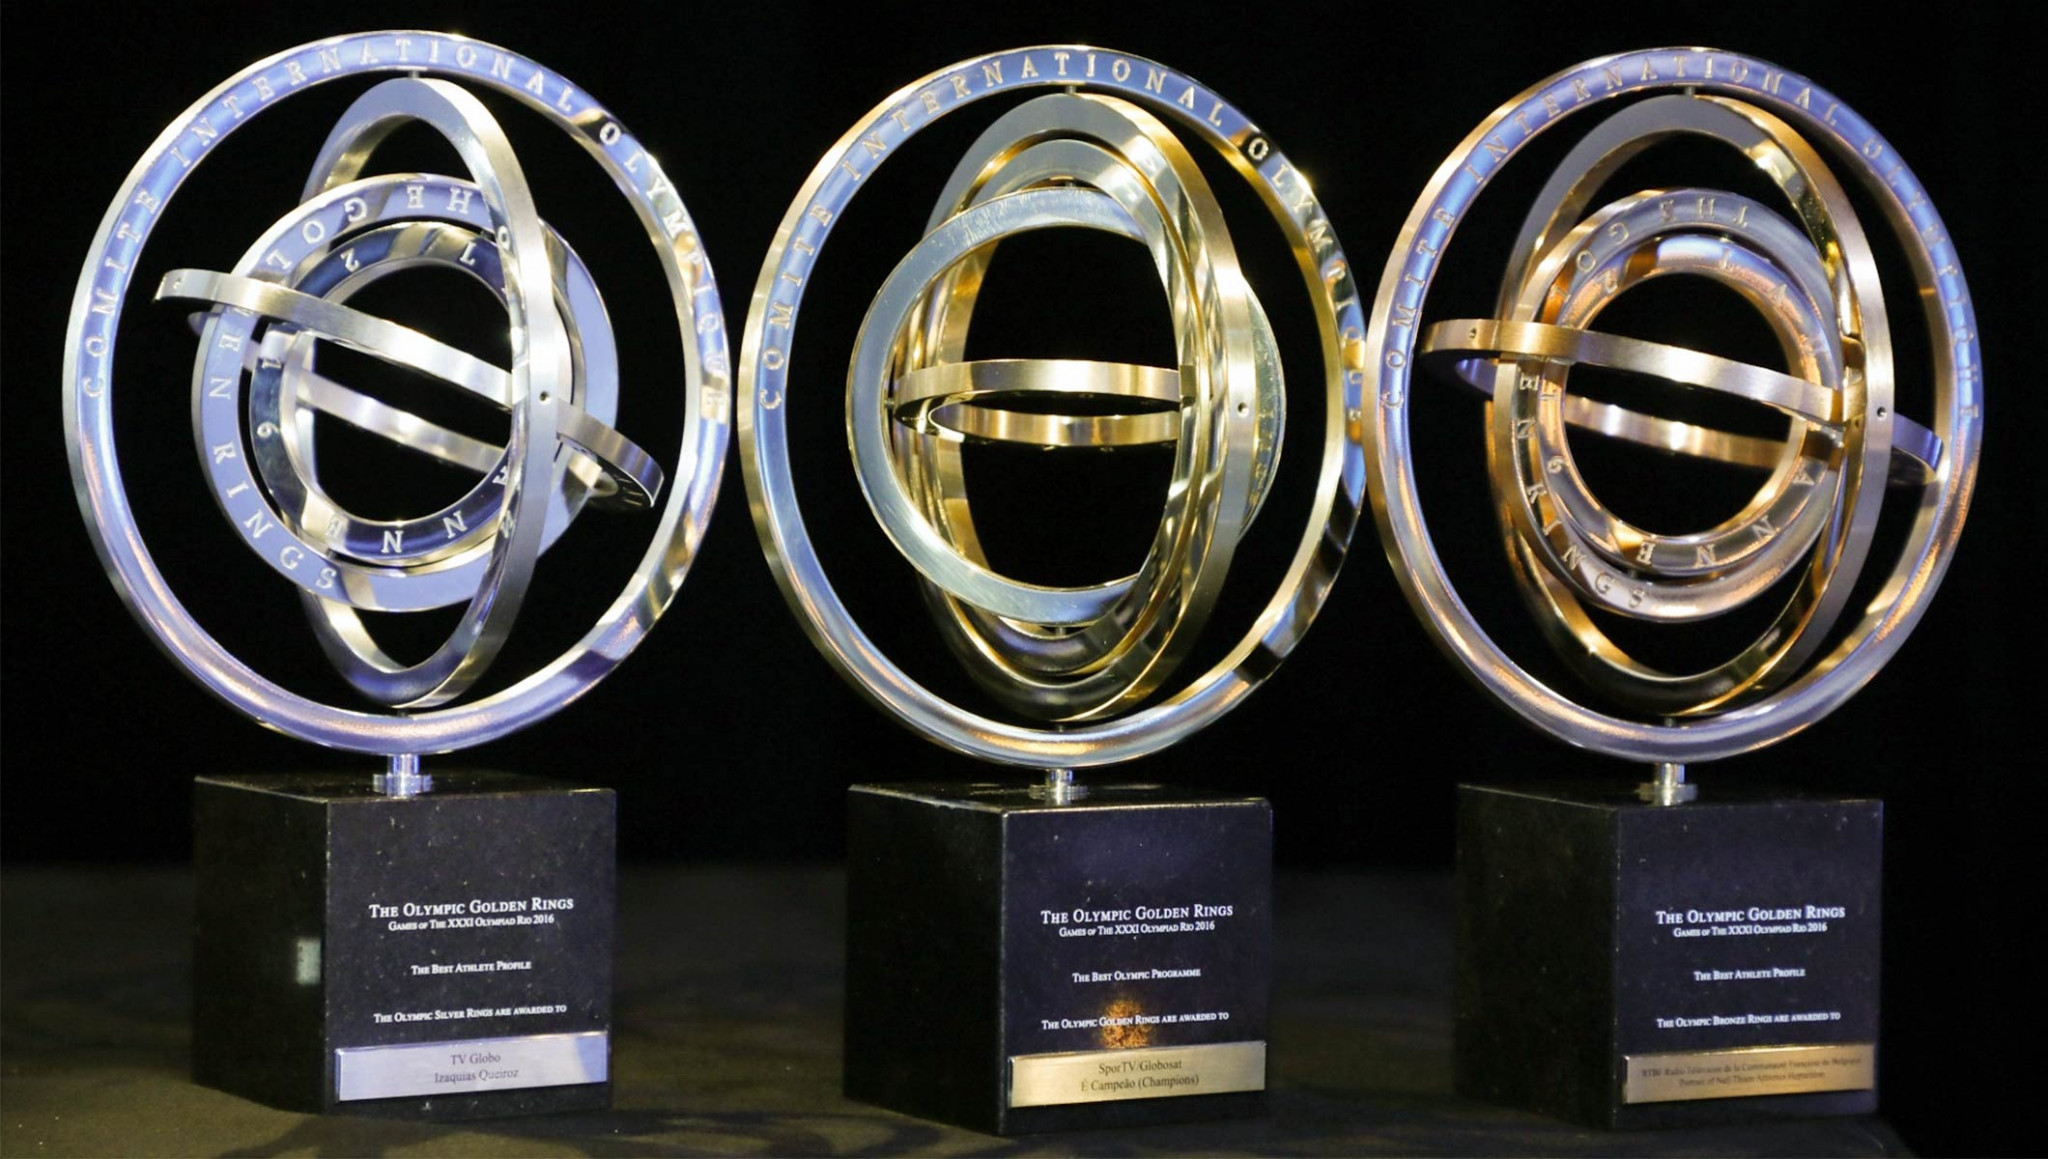 IOC Golden Rings awards have been handed out in Lausanne ©IOC